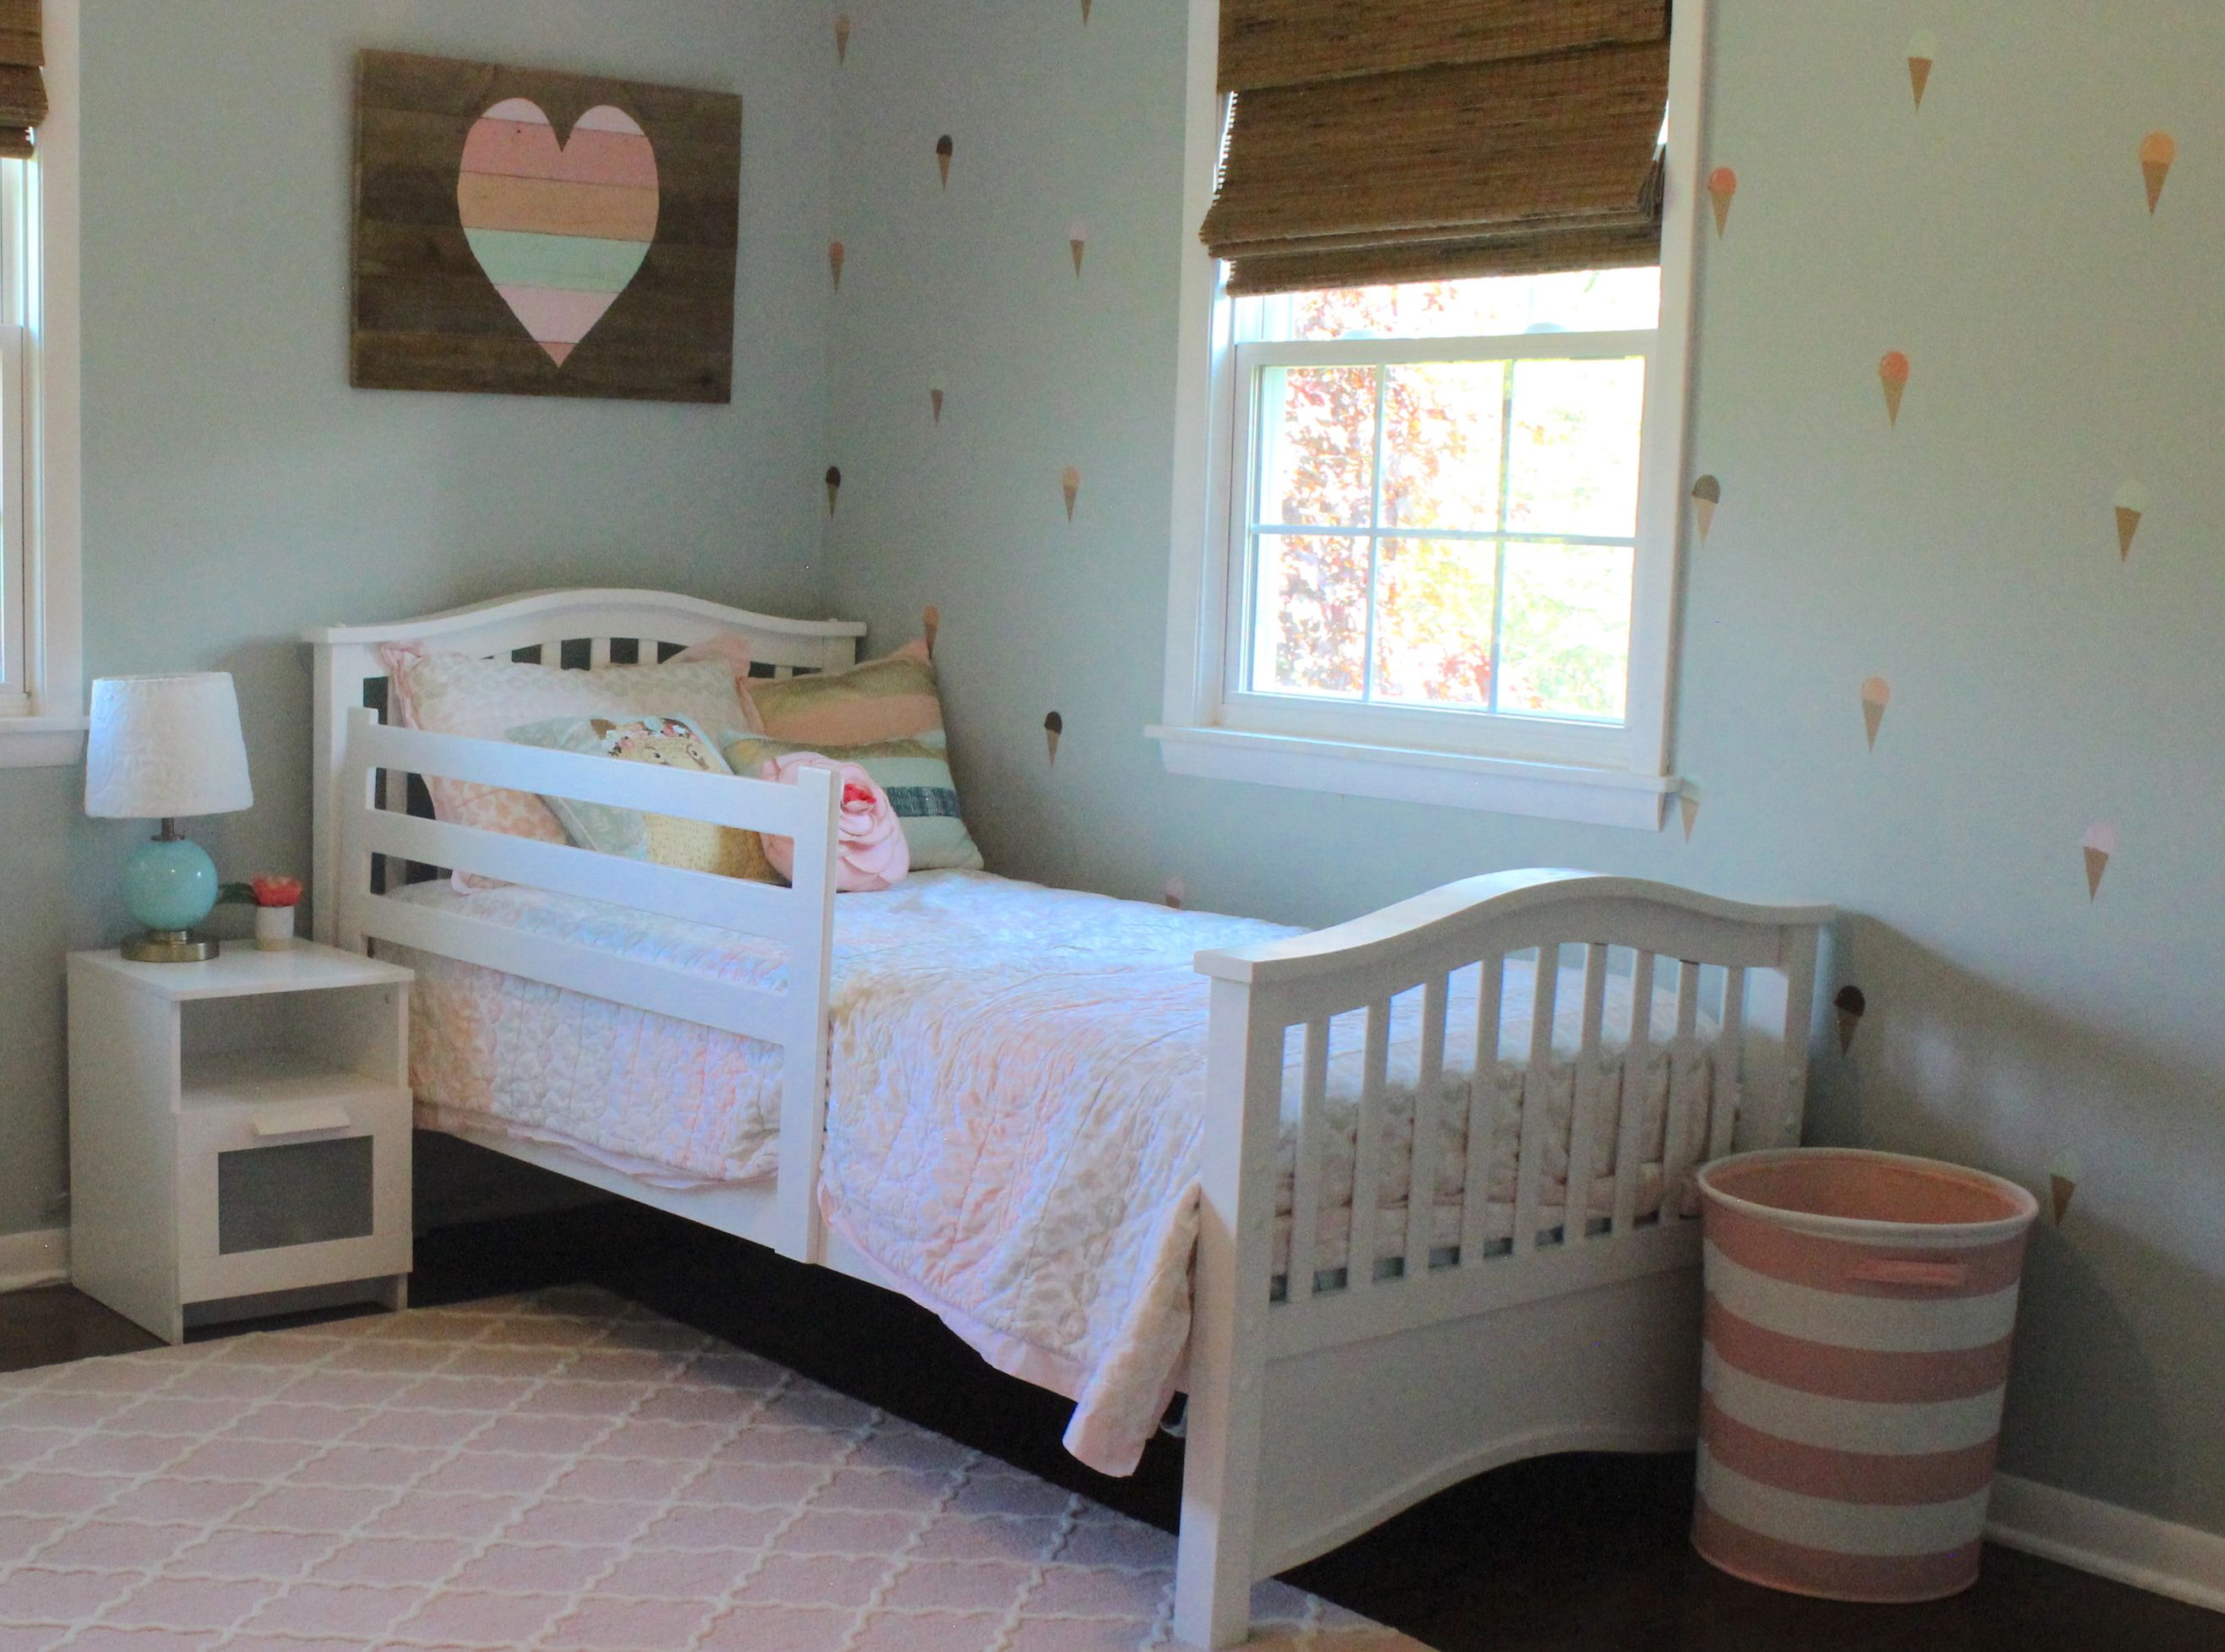 Teal And White Bedroom Best Big Girl Room With Pink And Teal Colors  White Bed And Blush Pink Review